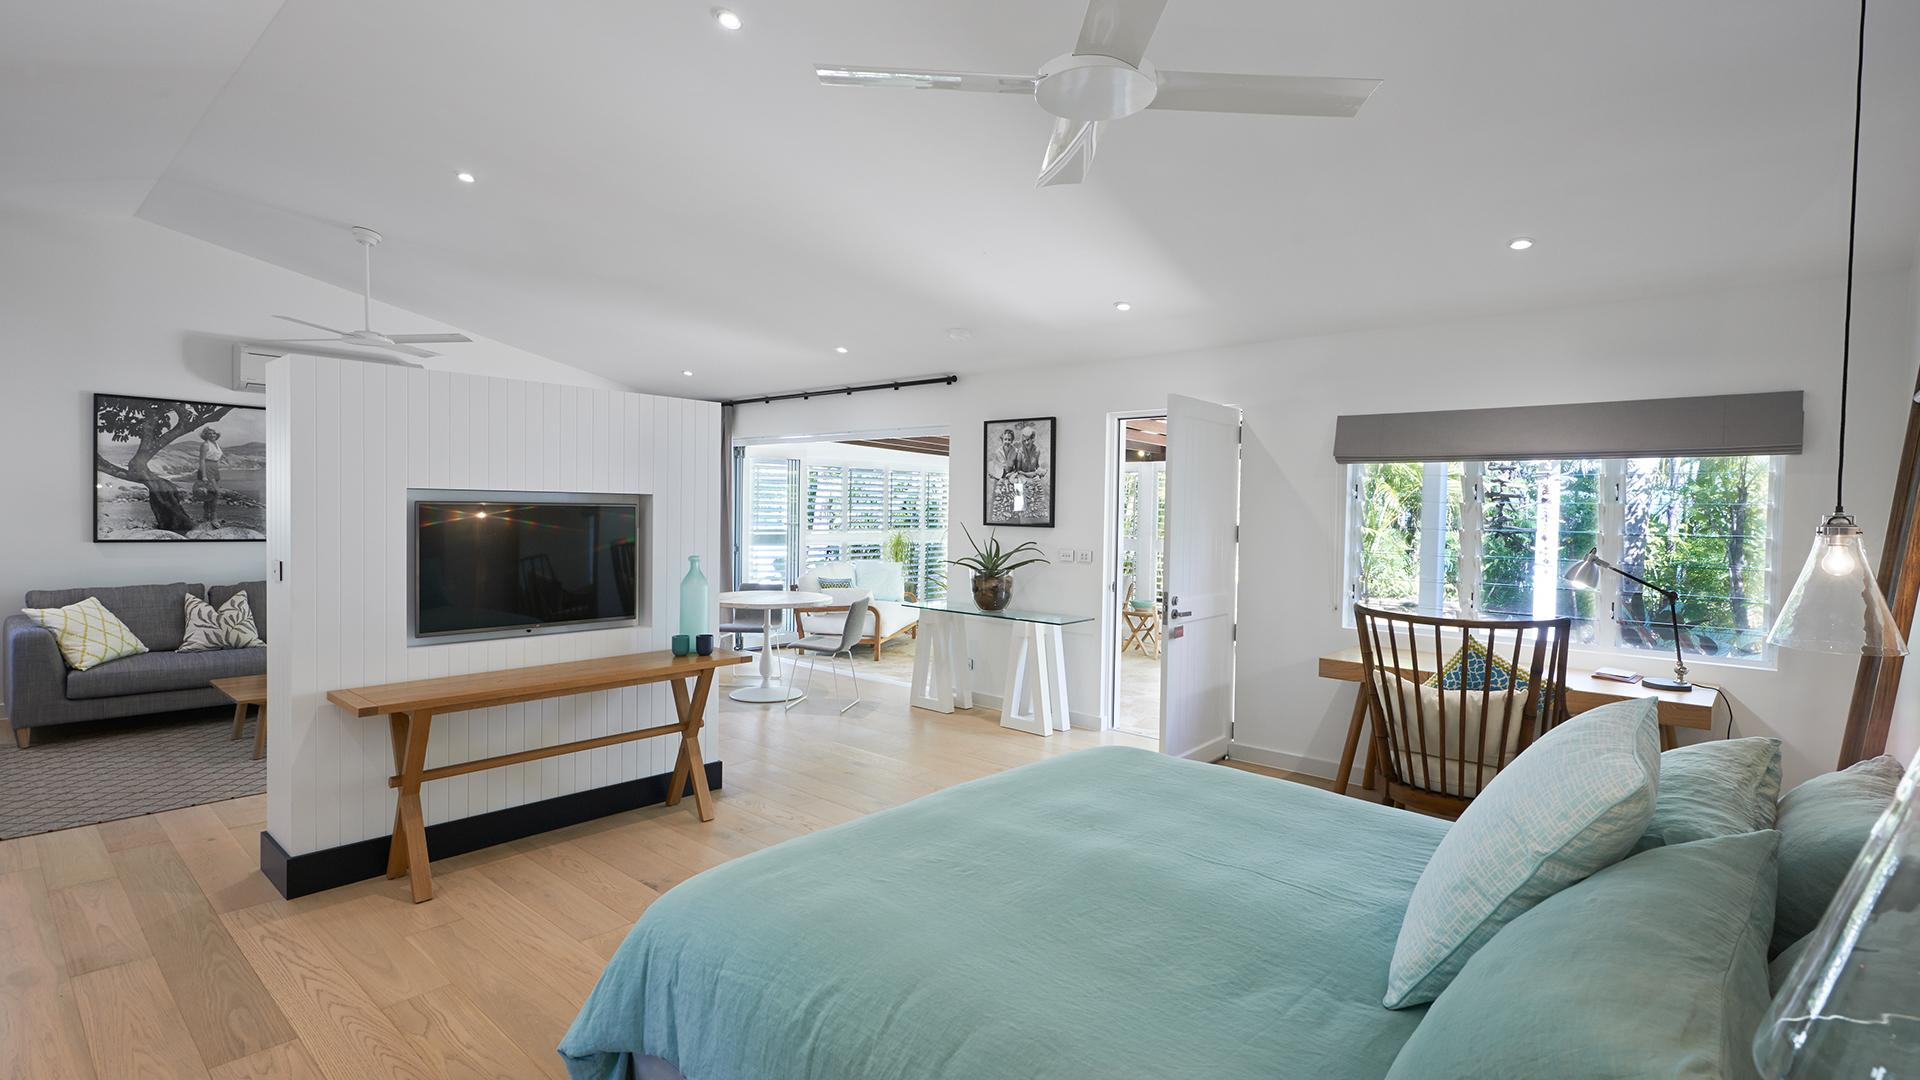 South Suite NOV2018 image 1 at Orpheus Island Lodge by null, Queensland, Australia